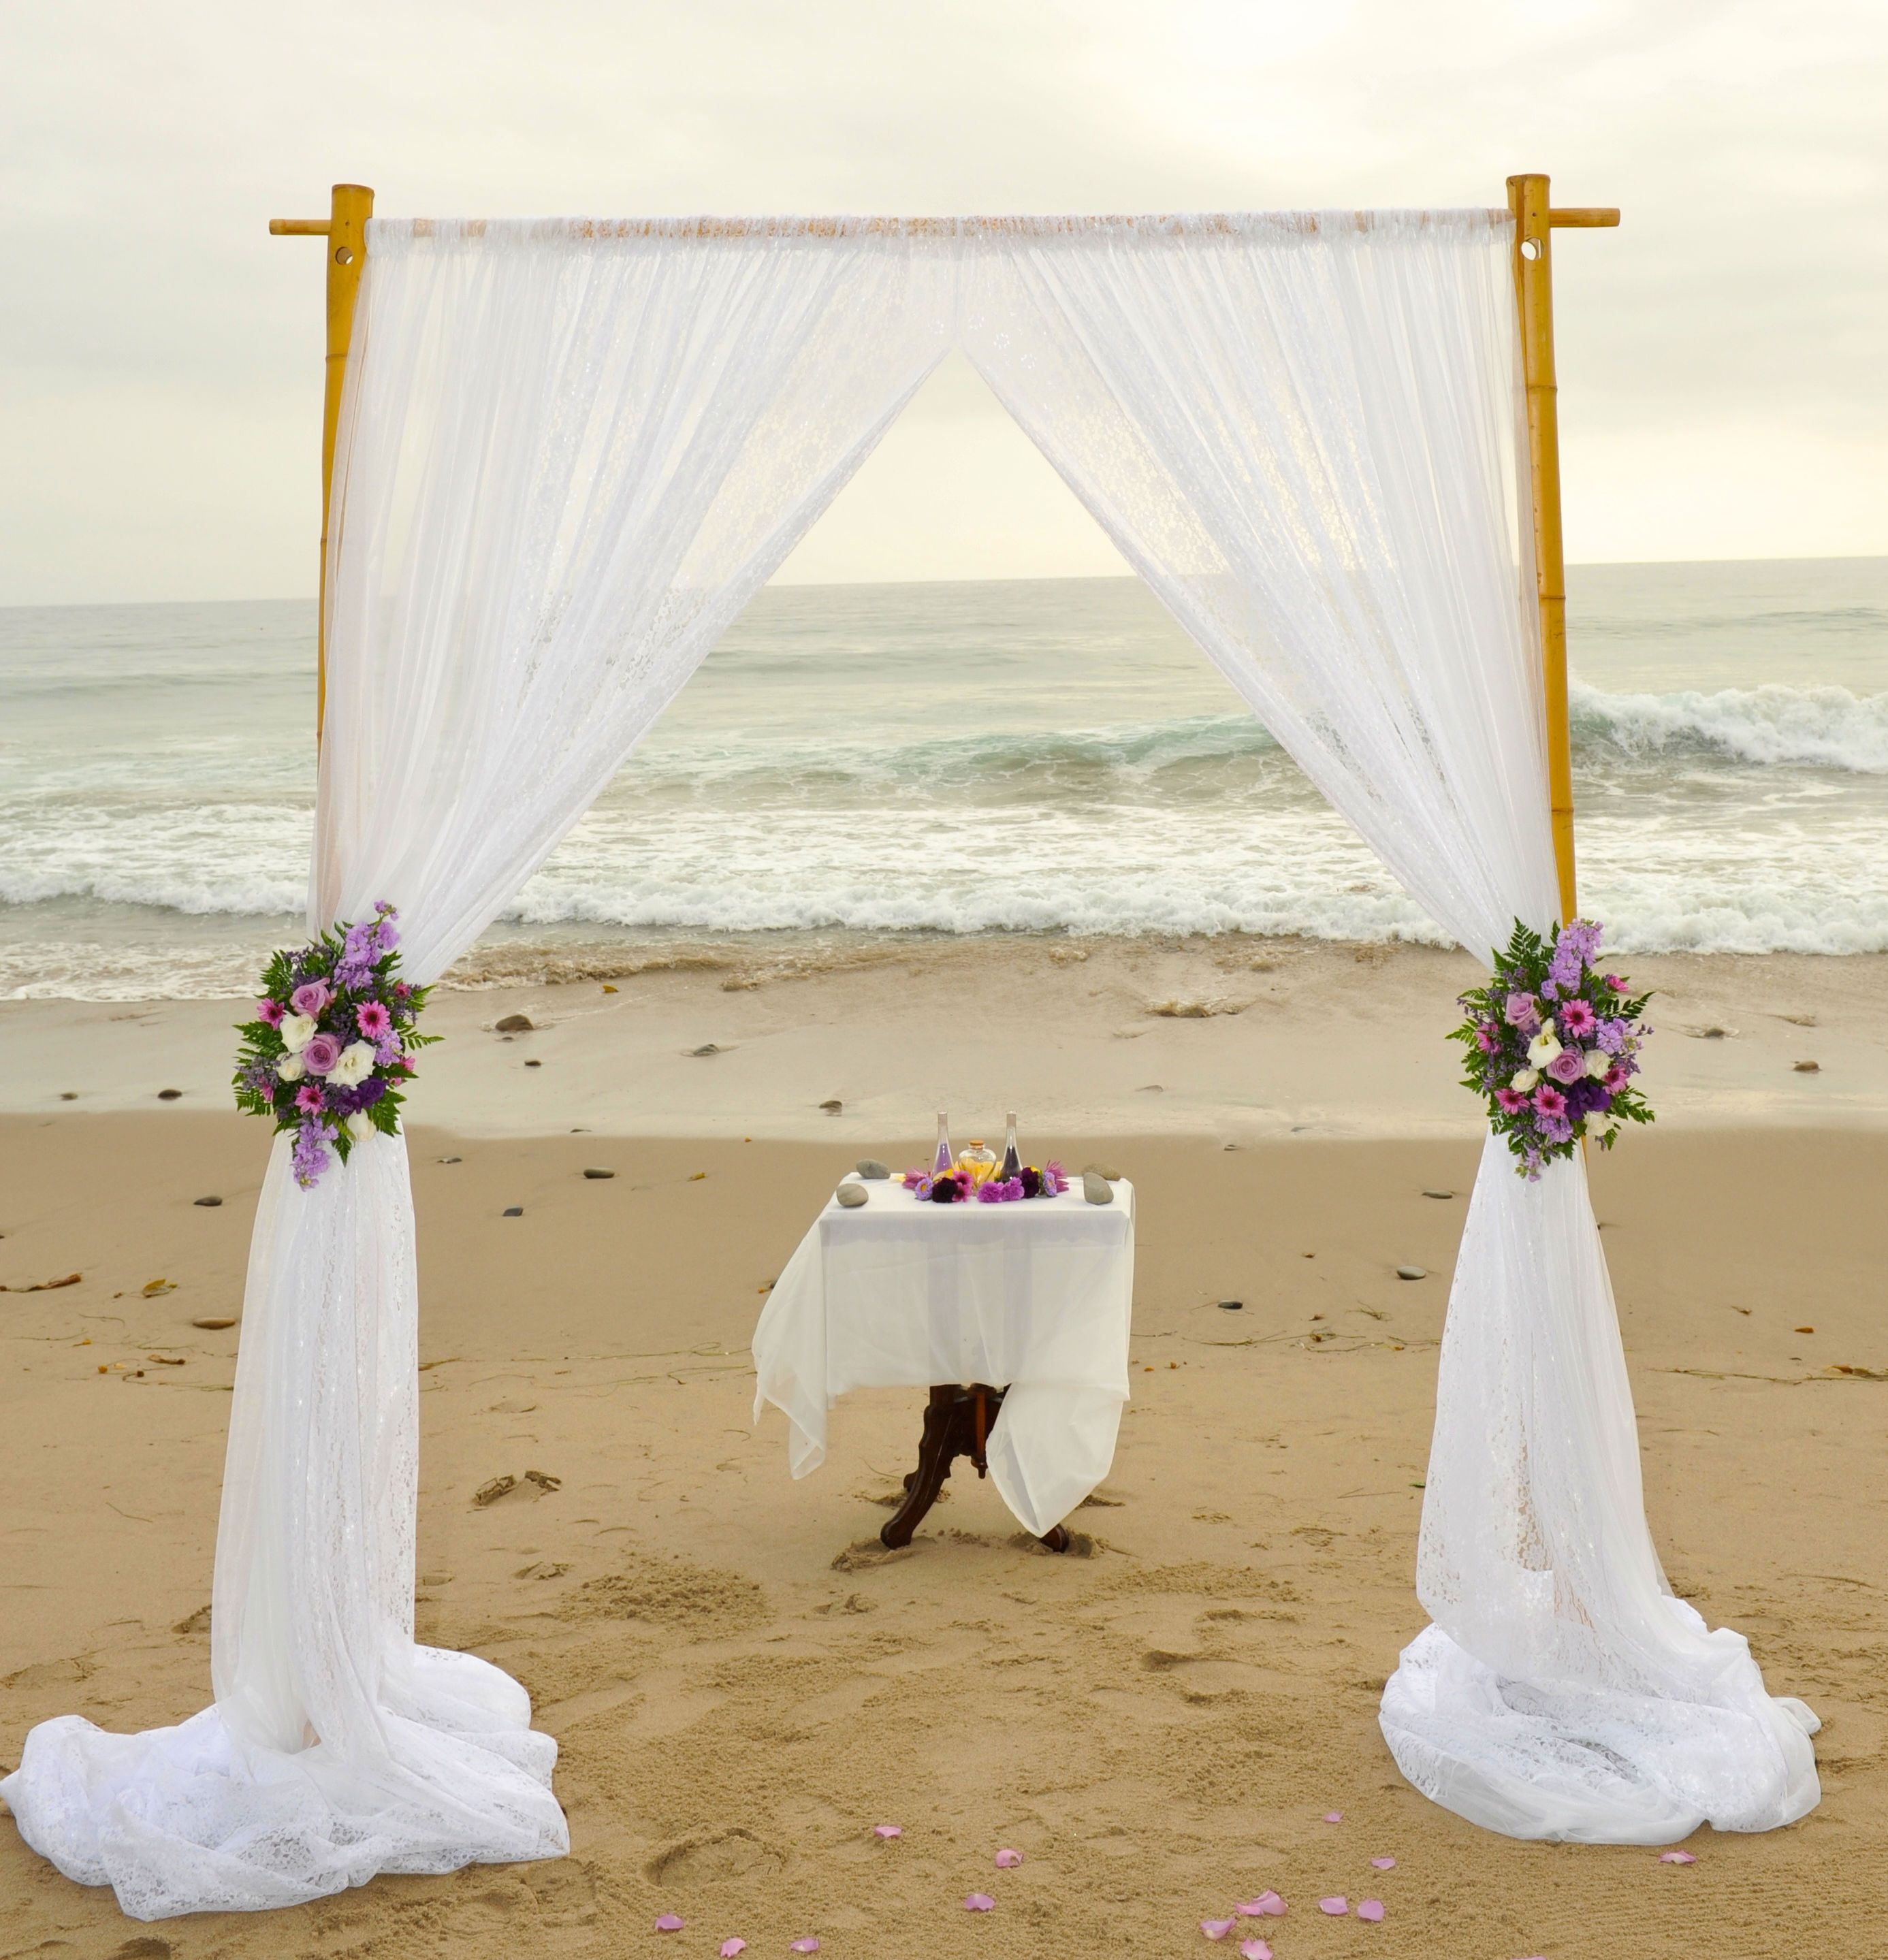 Beach Wedding Arch Decorations: Bamboo Wedding Arch, White Fabirc, Purple Flowers